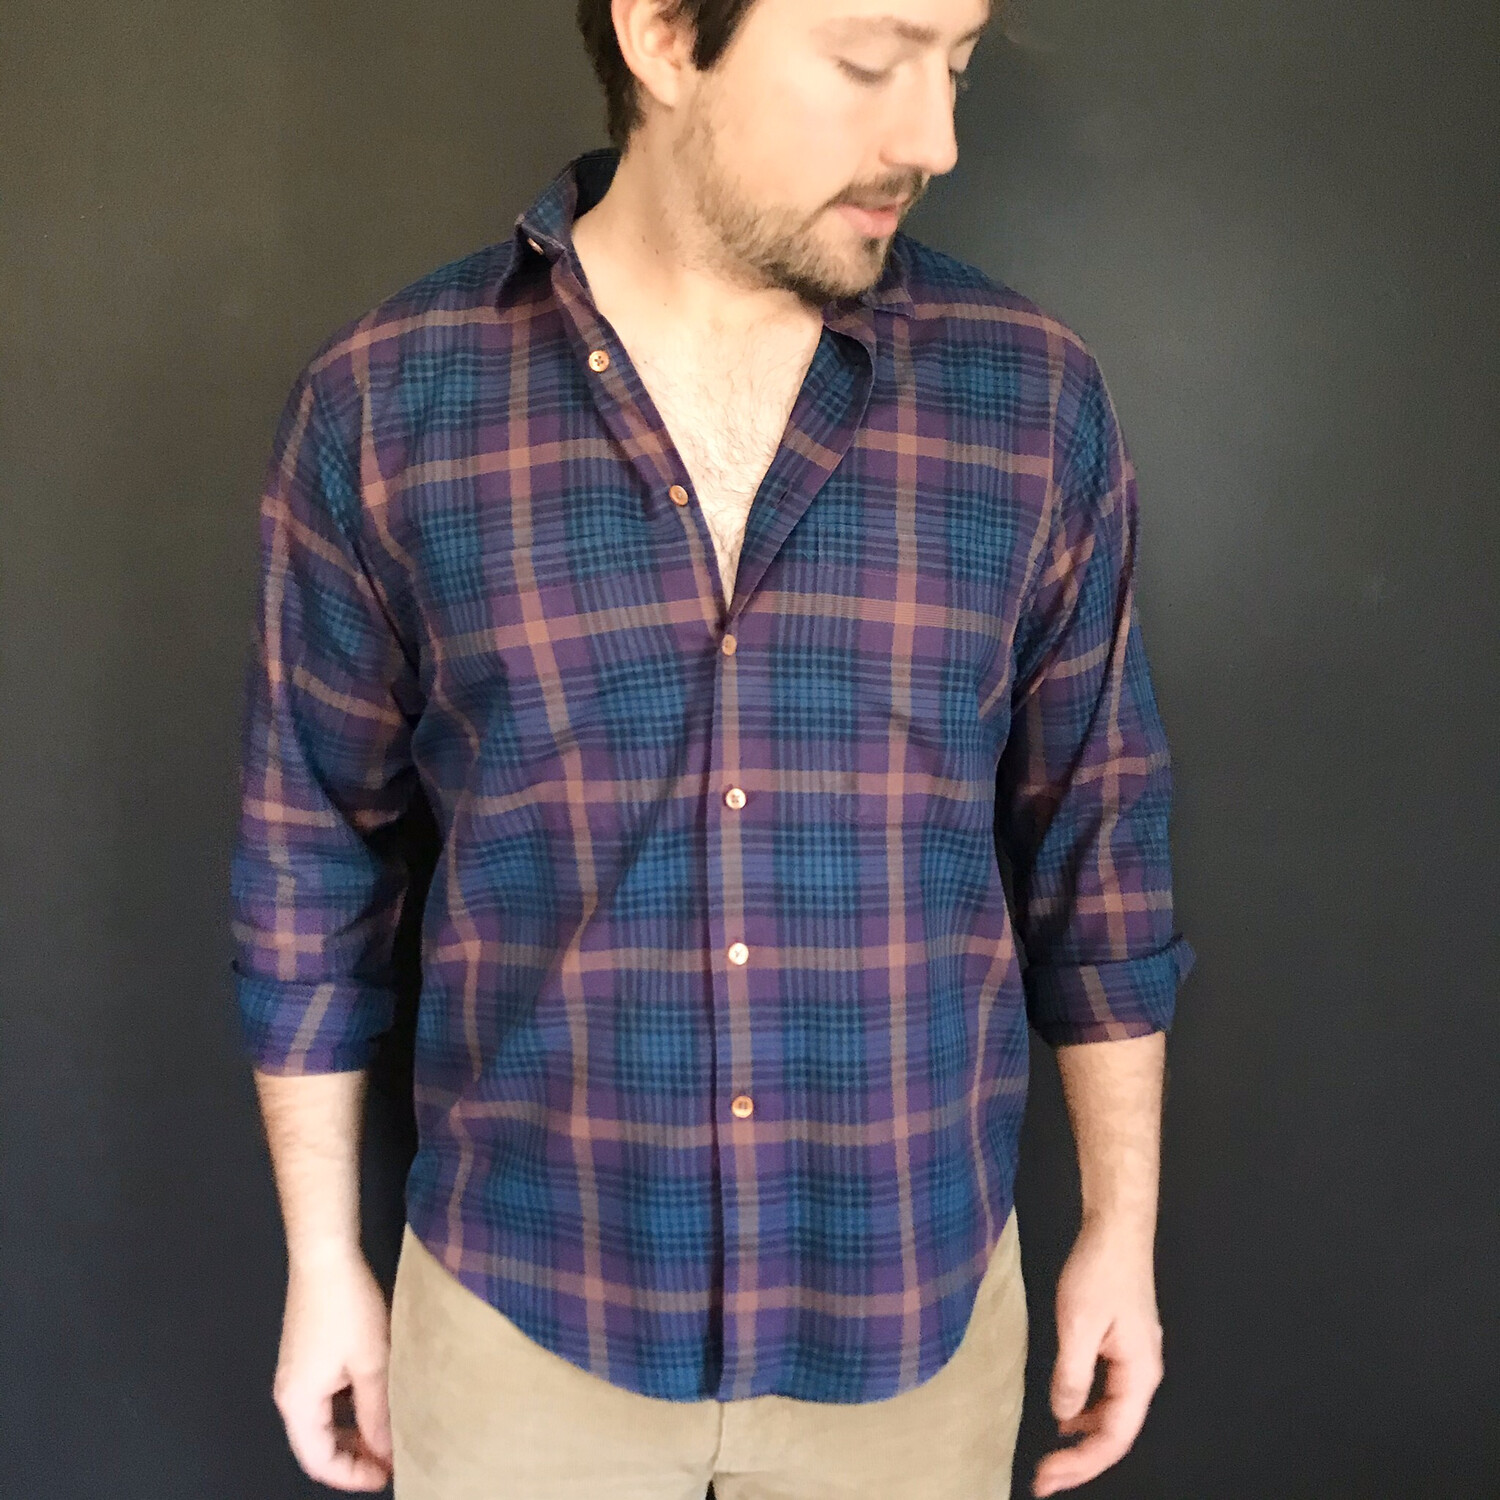 Vintage Plaid Button-Down